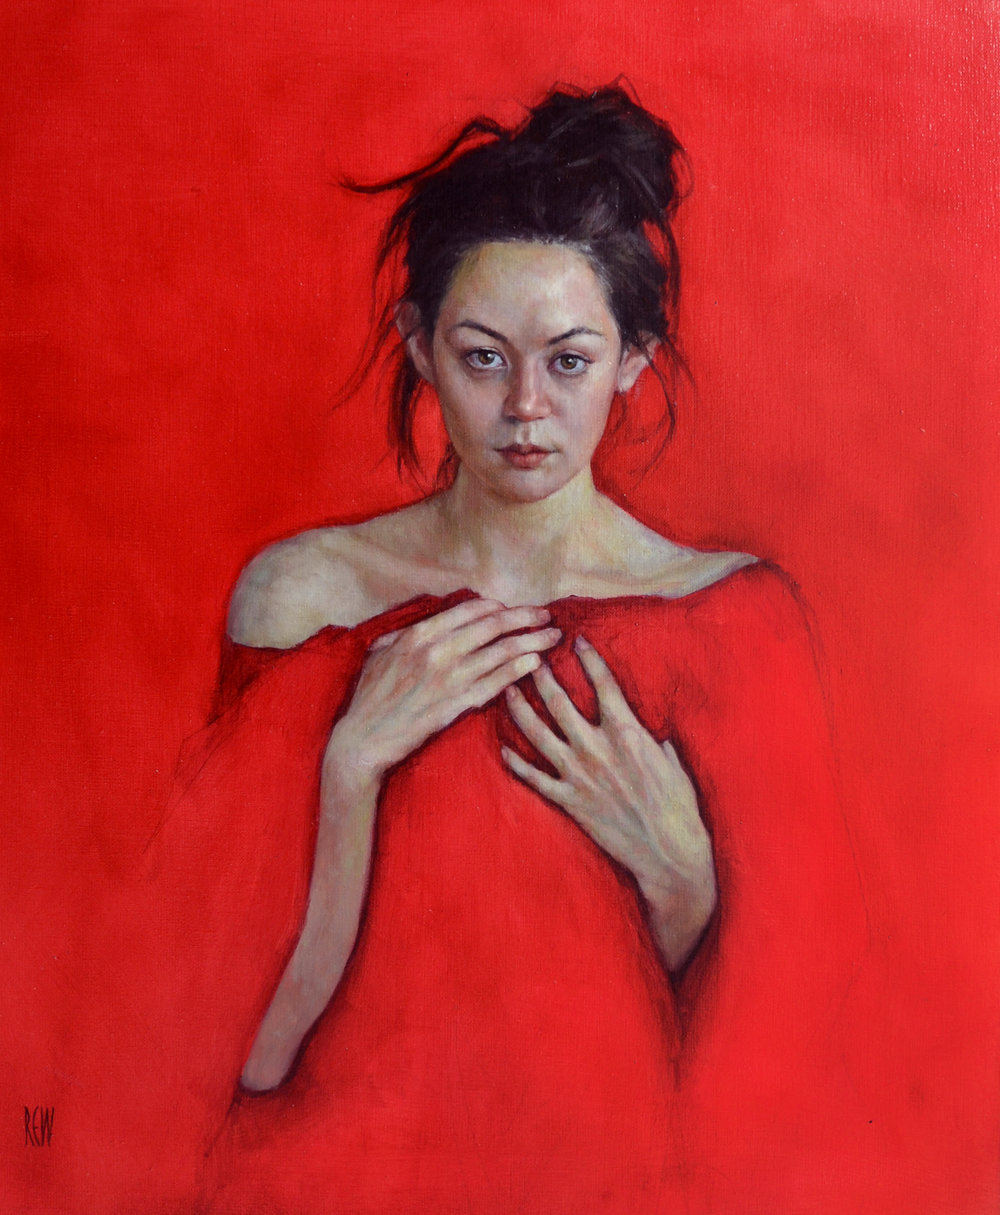 Crimson Heart, Oil on linen,  50x60cm